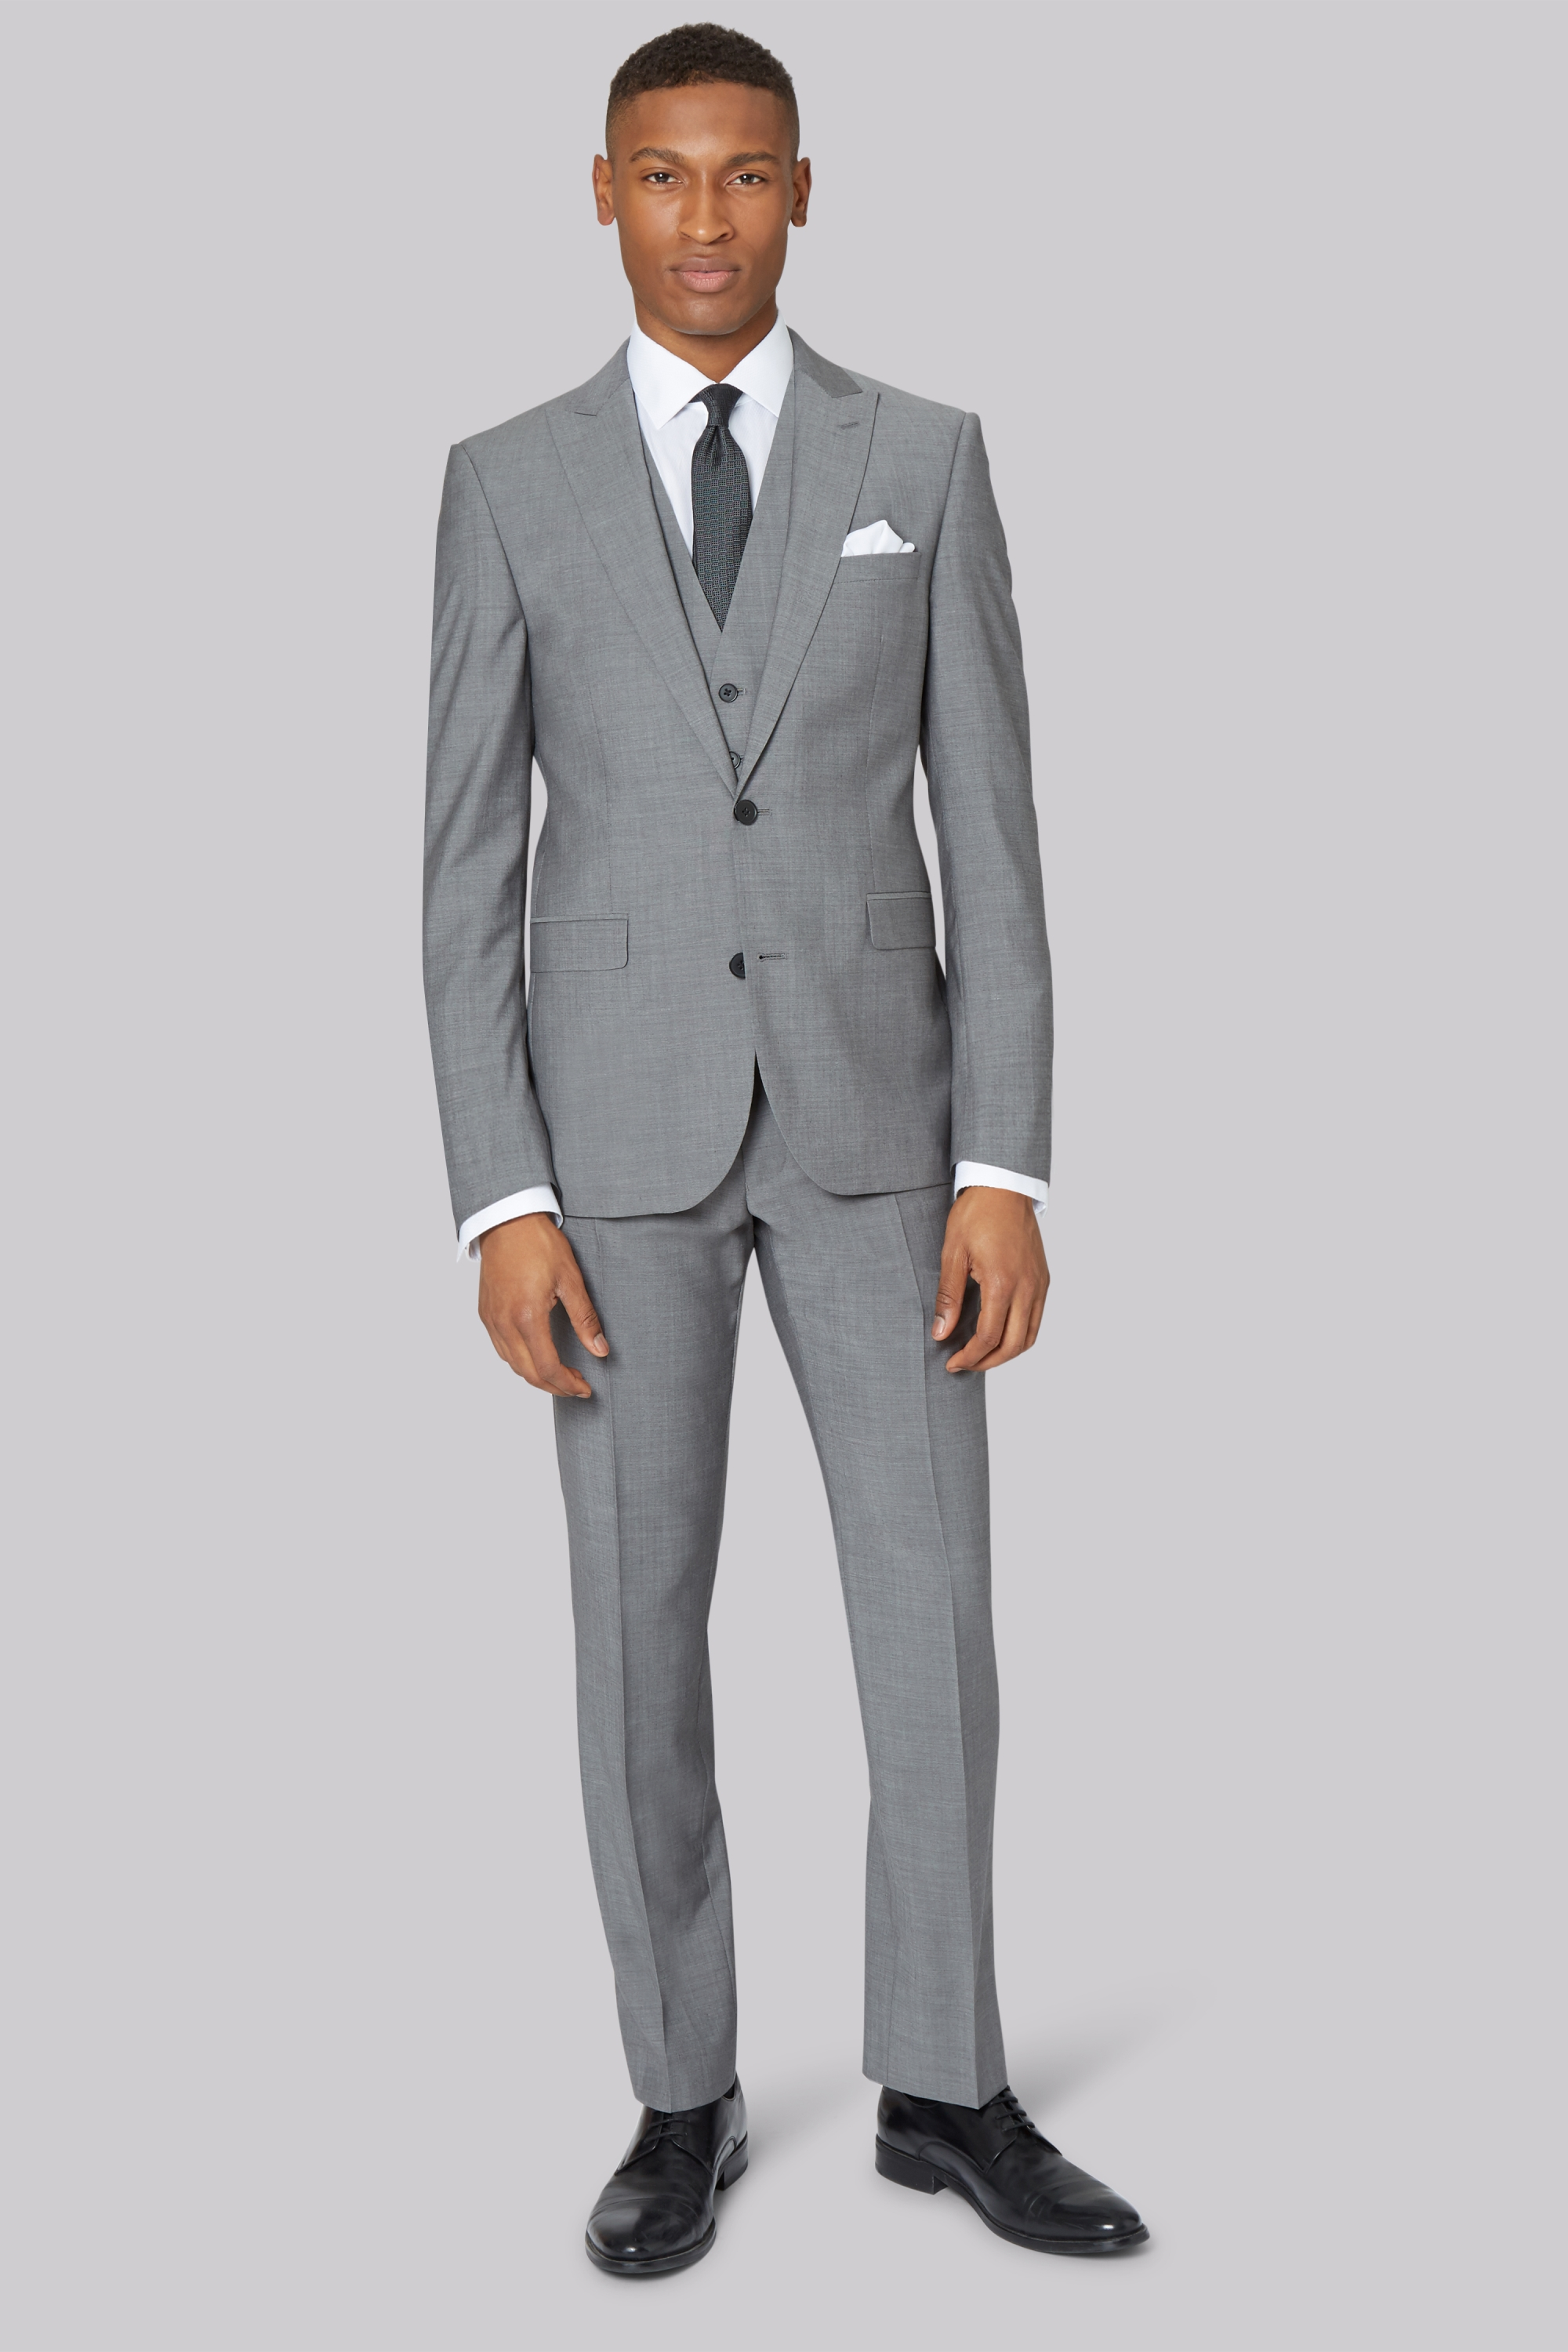 DKNY Suits, Shirts & more | Moss Bros